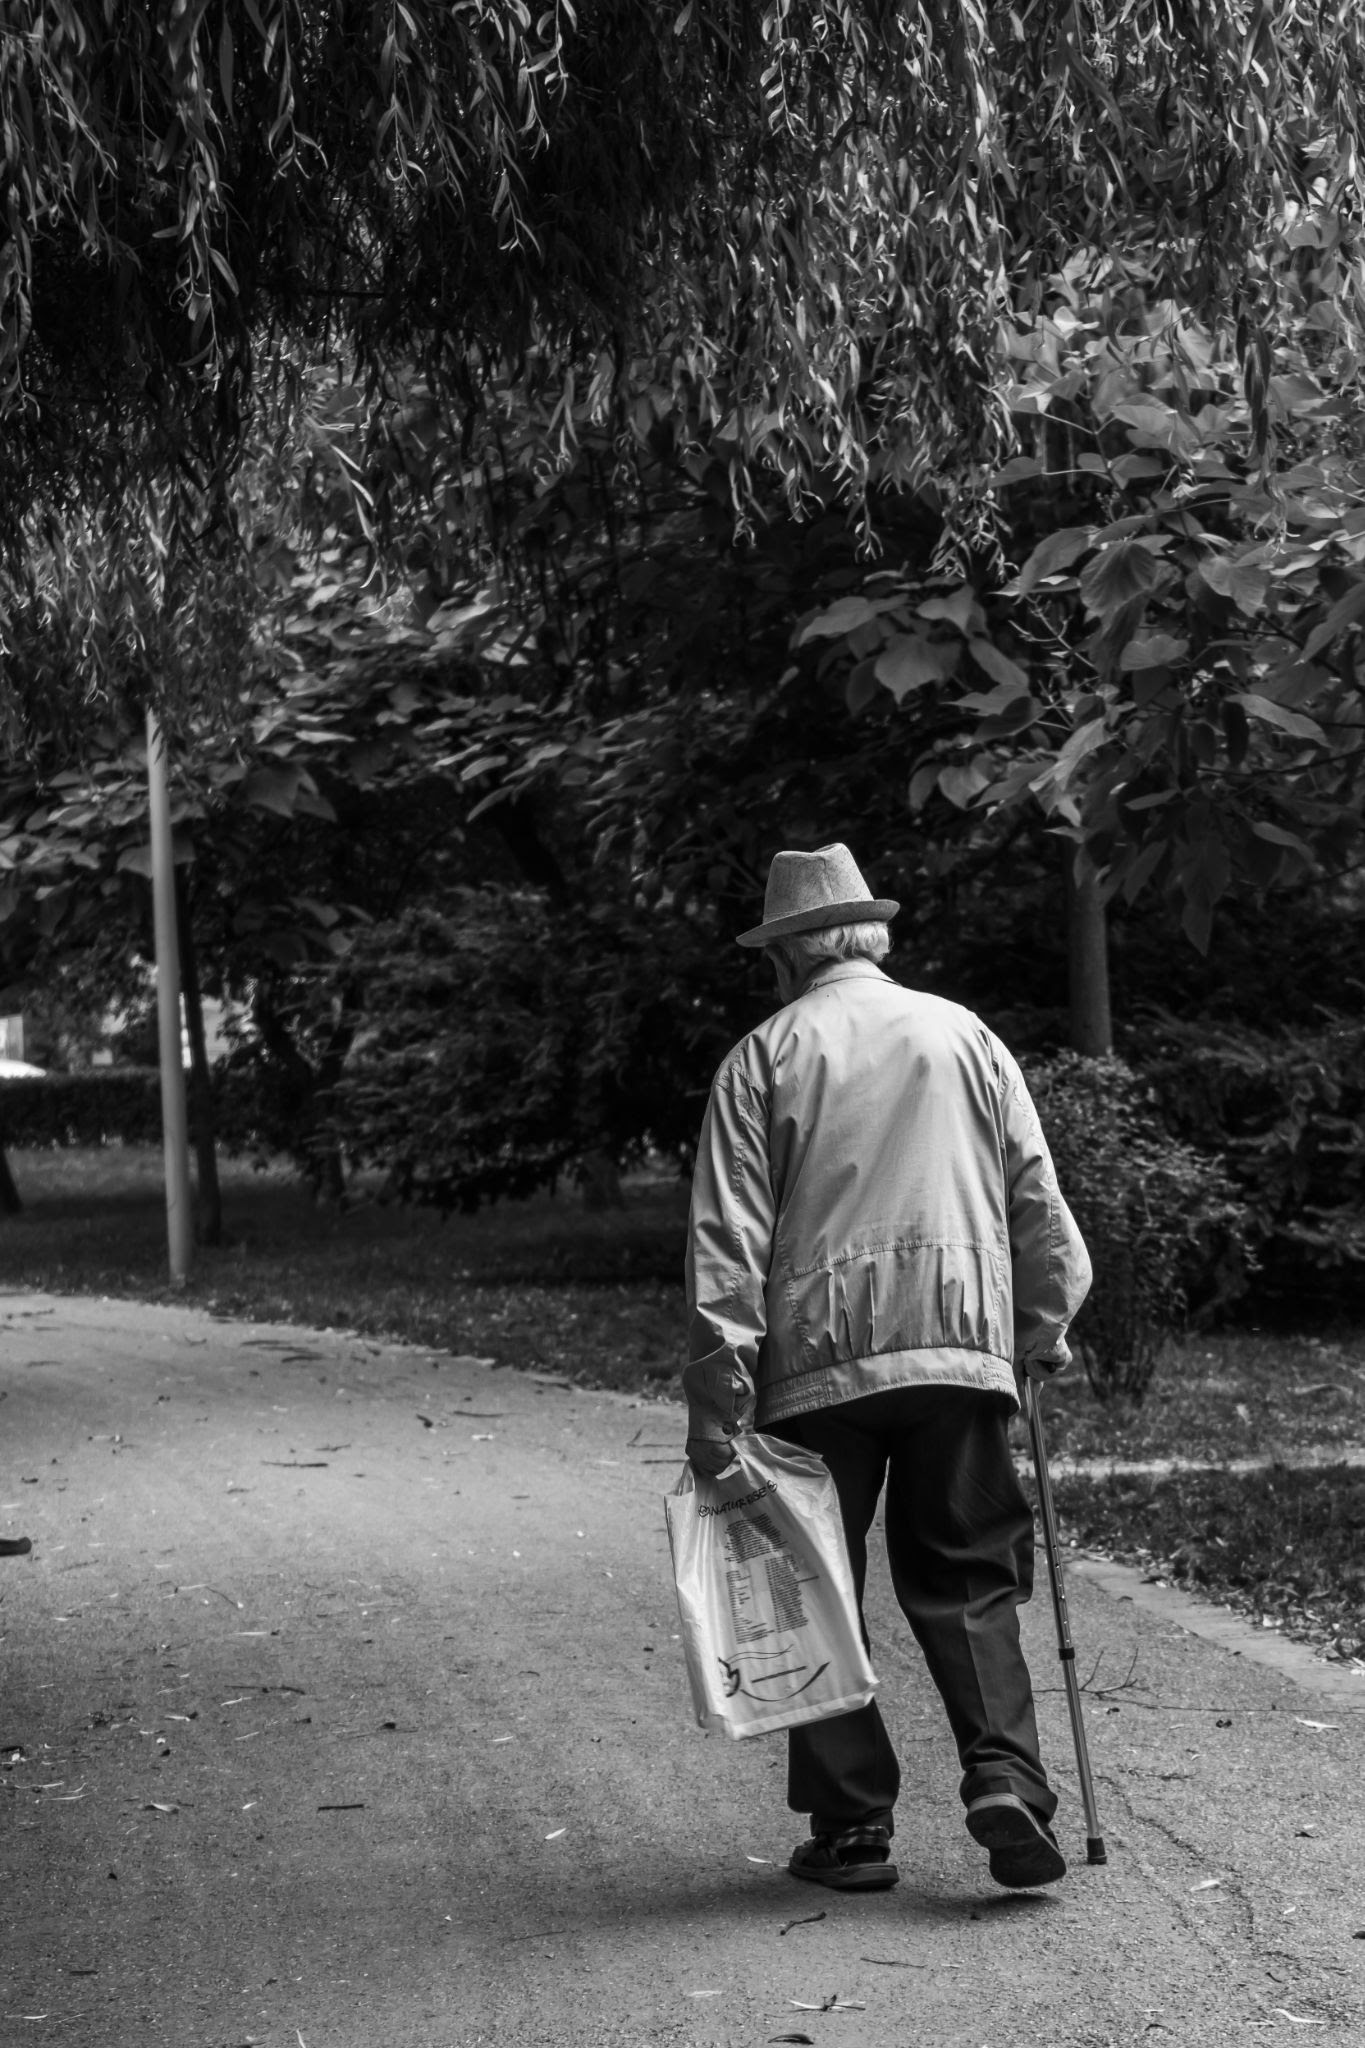 senior walking down dirt path with cane holding a bag